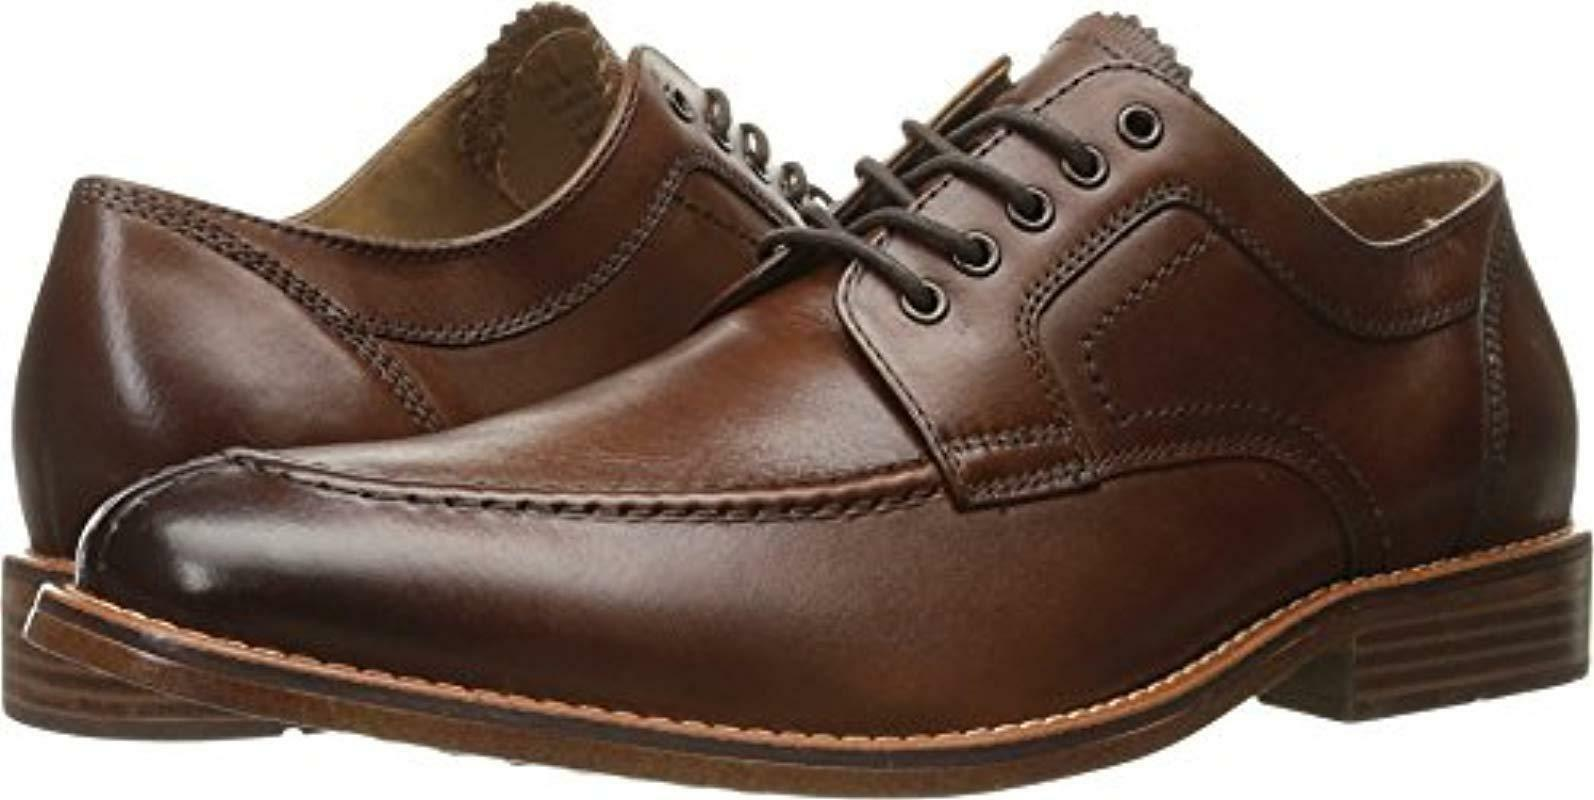 G. H. Bass Carsen Oxfords LEATHER Dress shoes Casual British Tan Brown Size 8.5